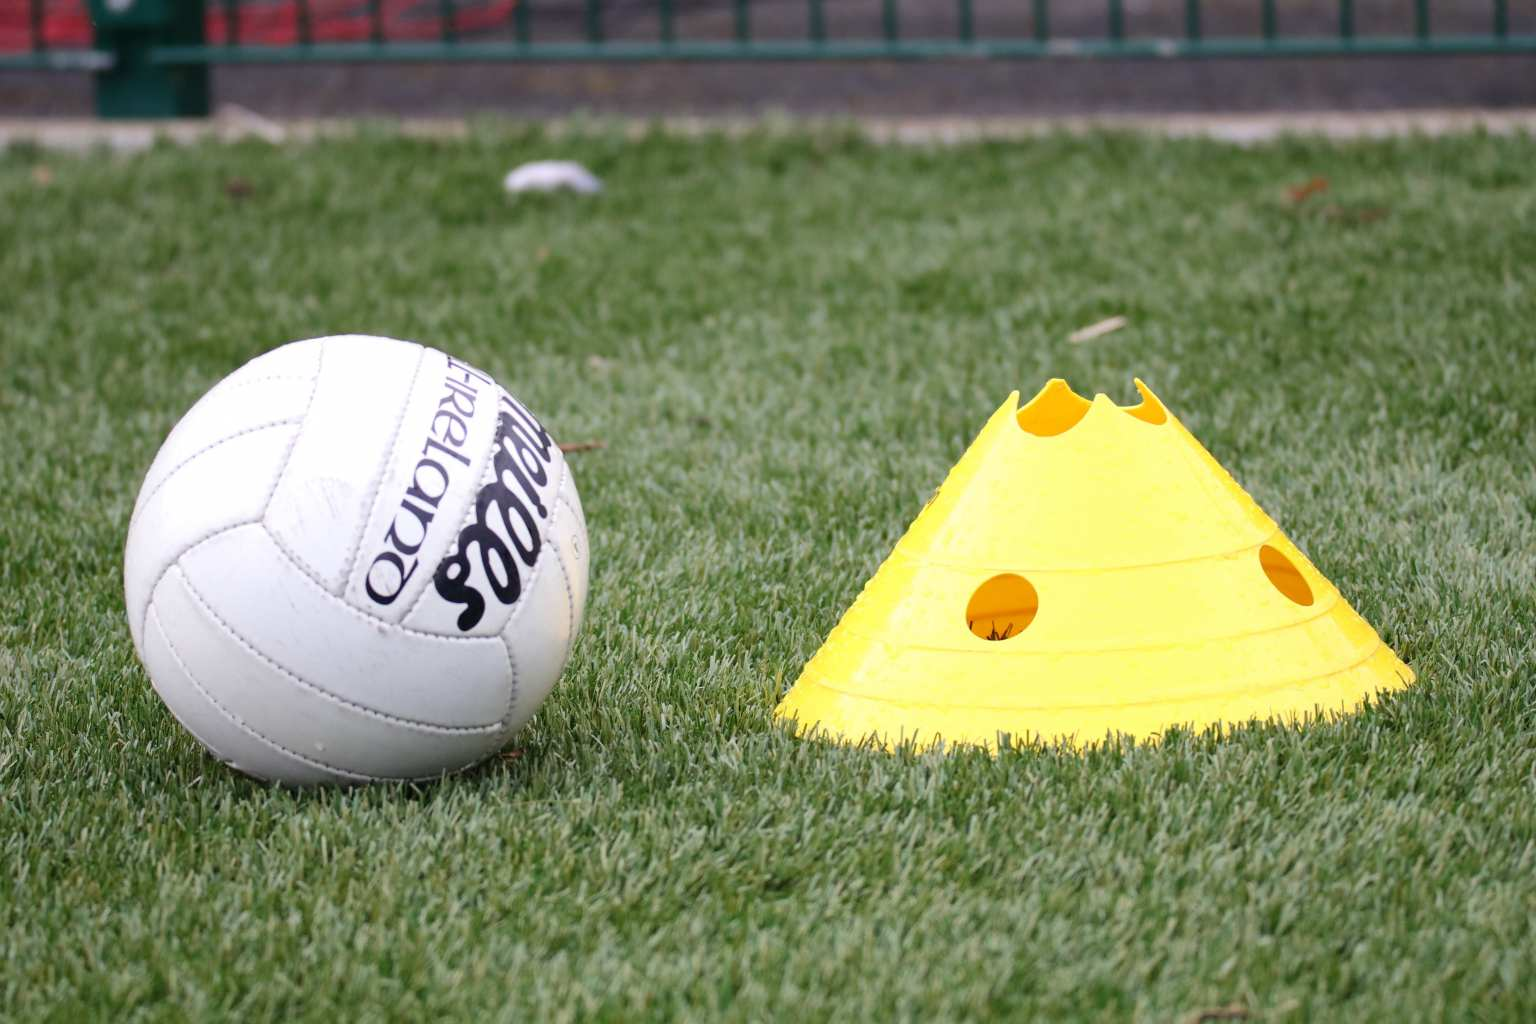 A Gaelic football and come on a pitch to signify the Dublin Ladies Football Club Fixtures.